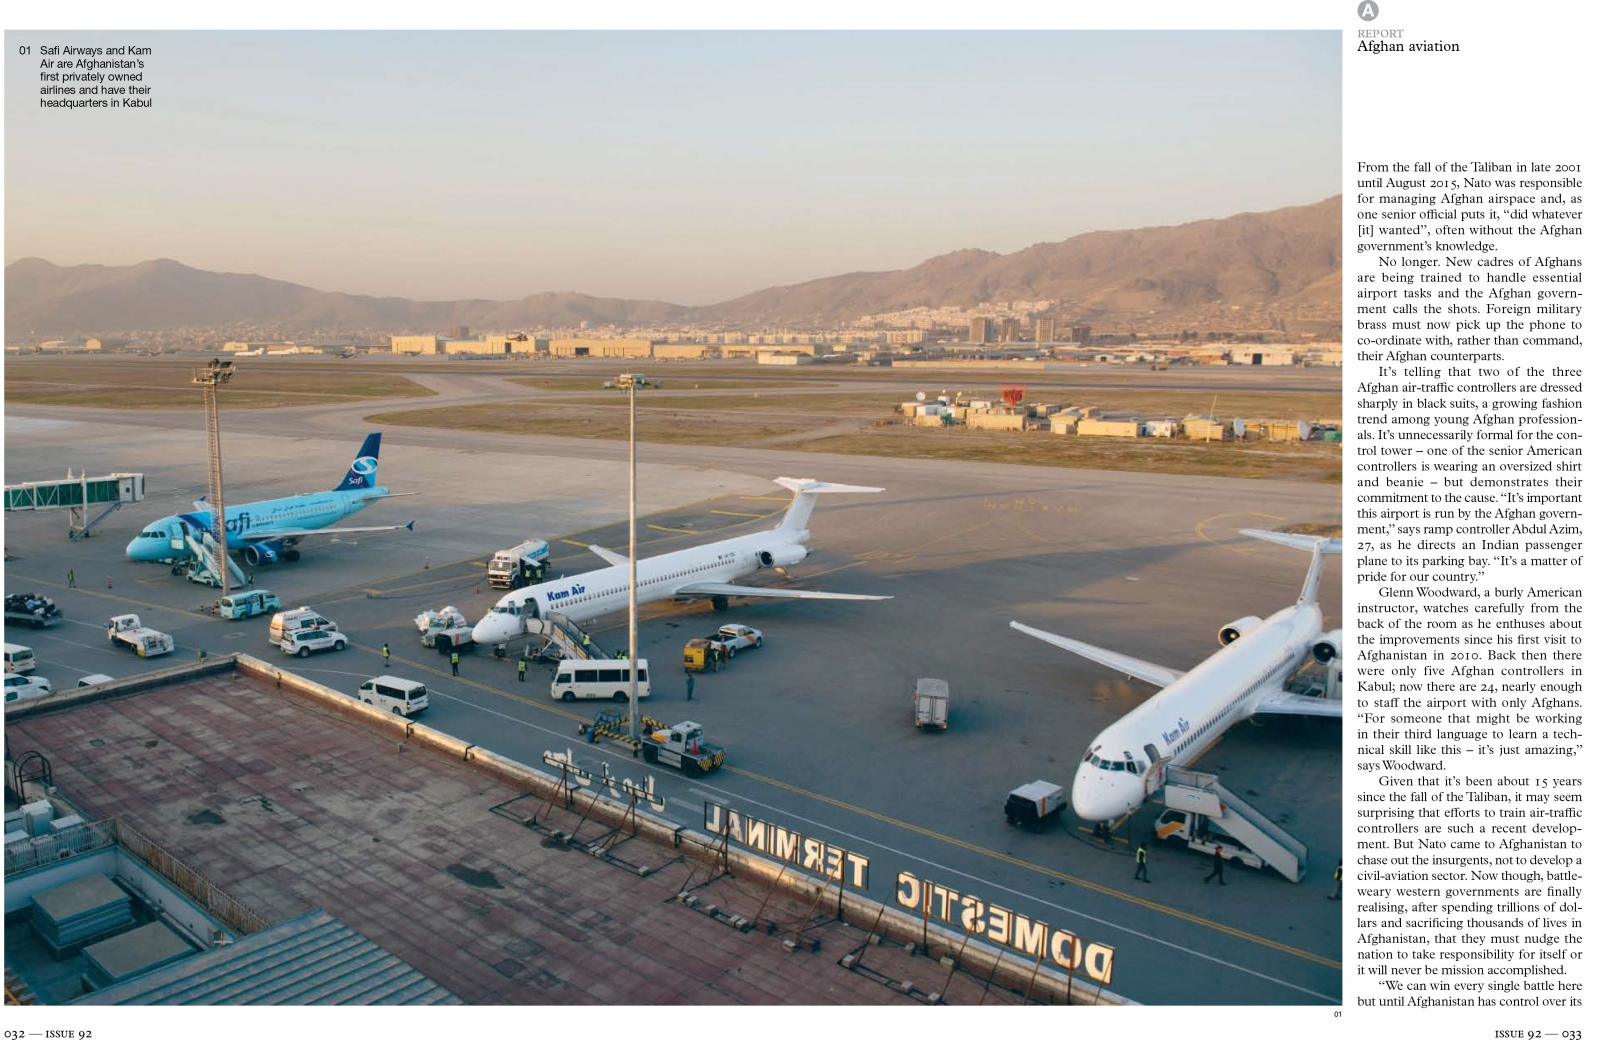 Art and Documentary Photography - Loading Monocle_-_Afghan_airport-2.jpg